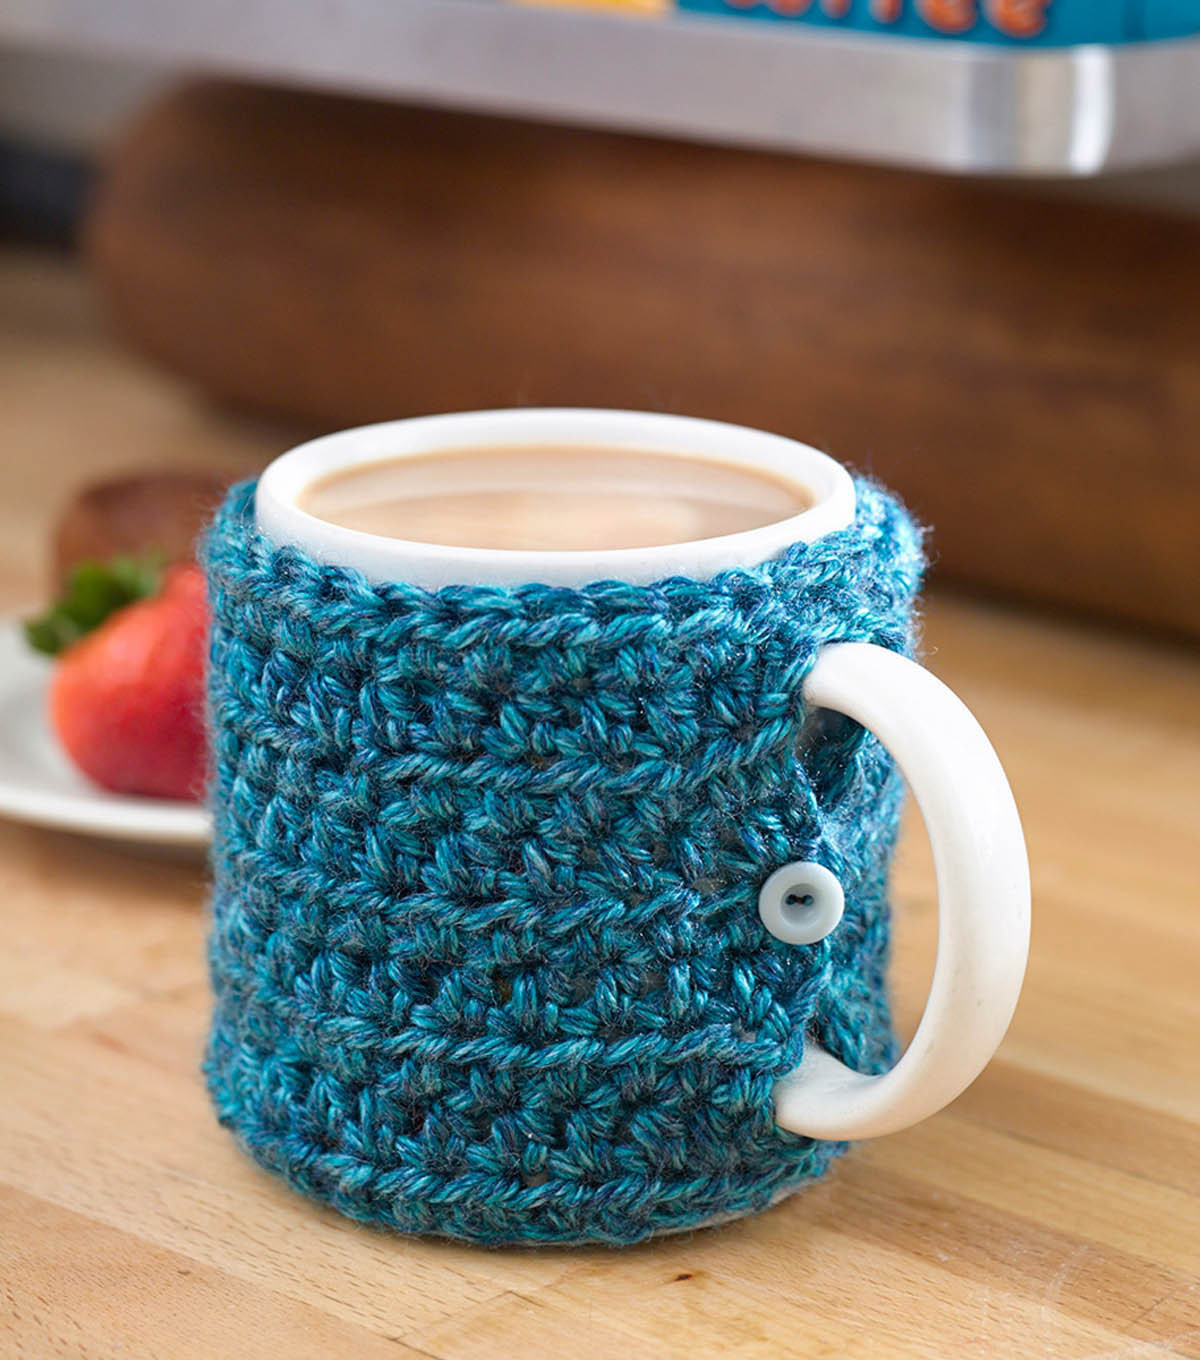 Crochet Coffee Cup Cozy Best Of Craftdrawer Crafts Free Easy to Crochet Mug Cozy Patterns Of Crochet Coffee Cup Cozy Luxury Pdf Crochet Pattern Coffee Mug Cozy with button by